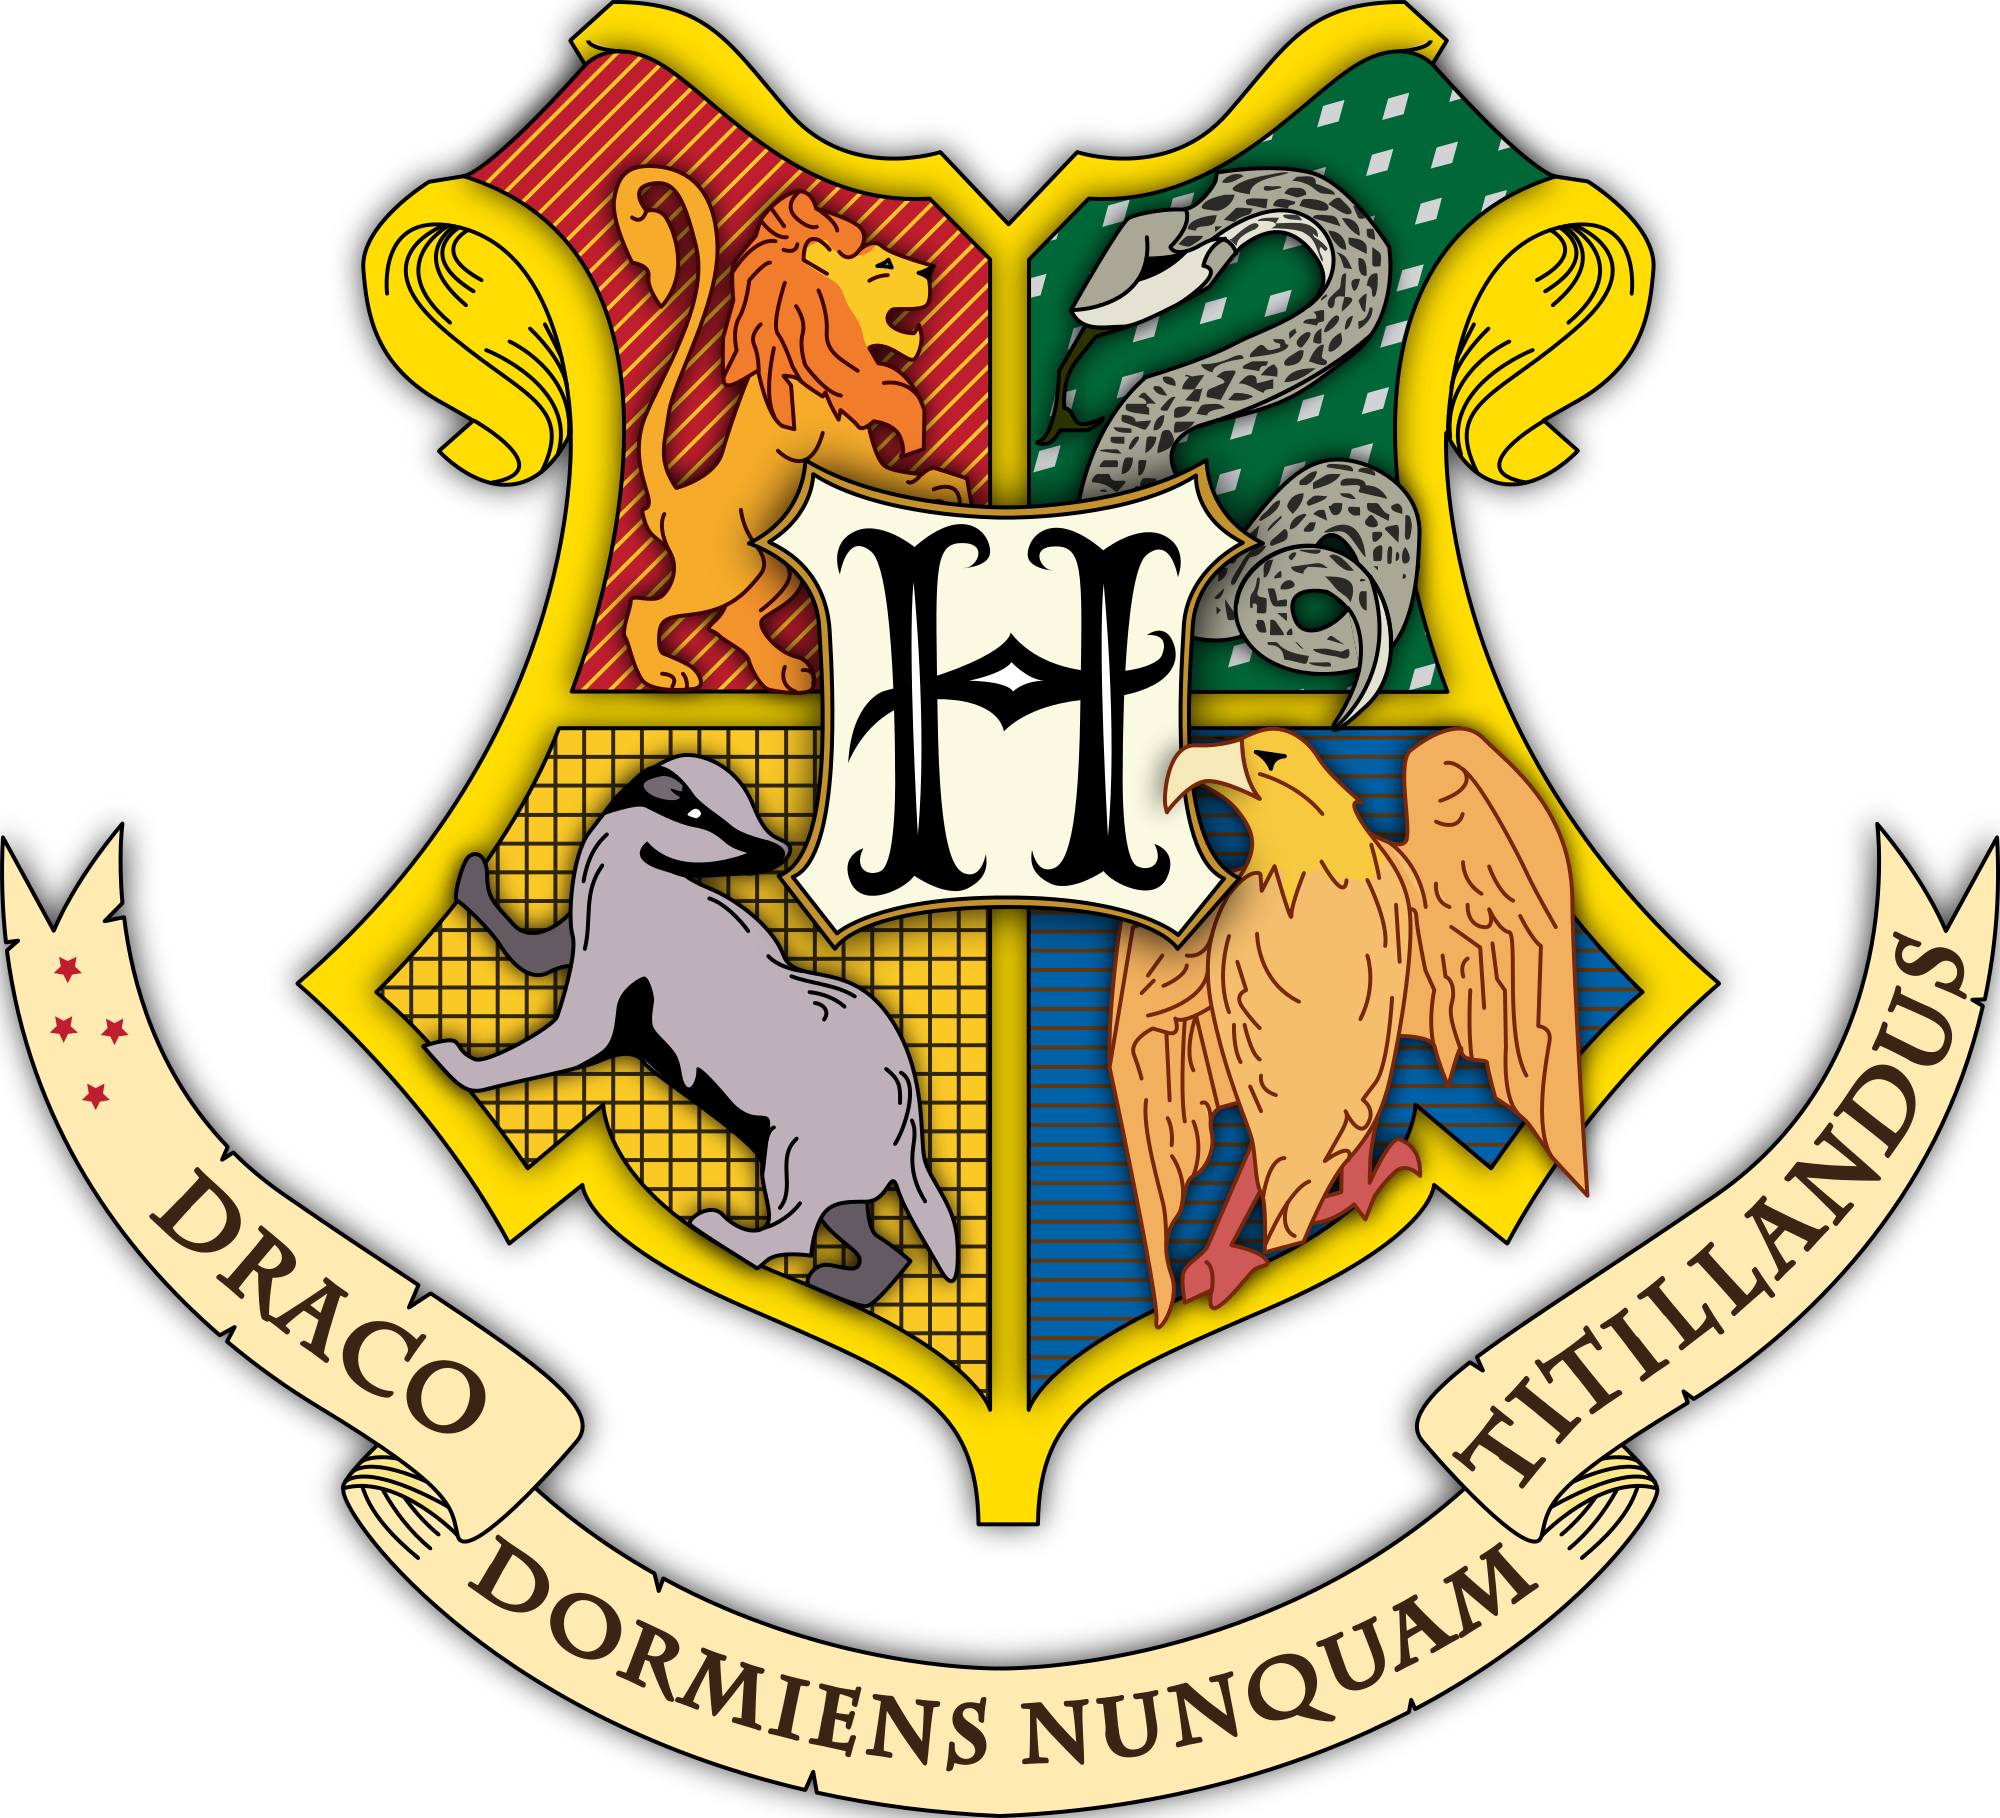 File:Hogwarts coat of arms colored with shading.svg.